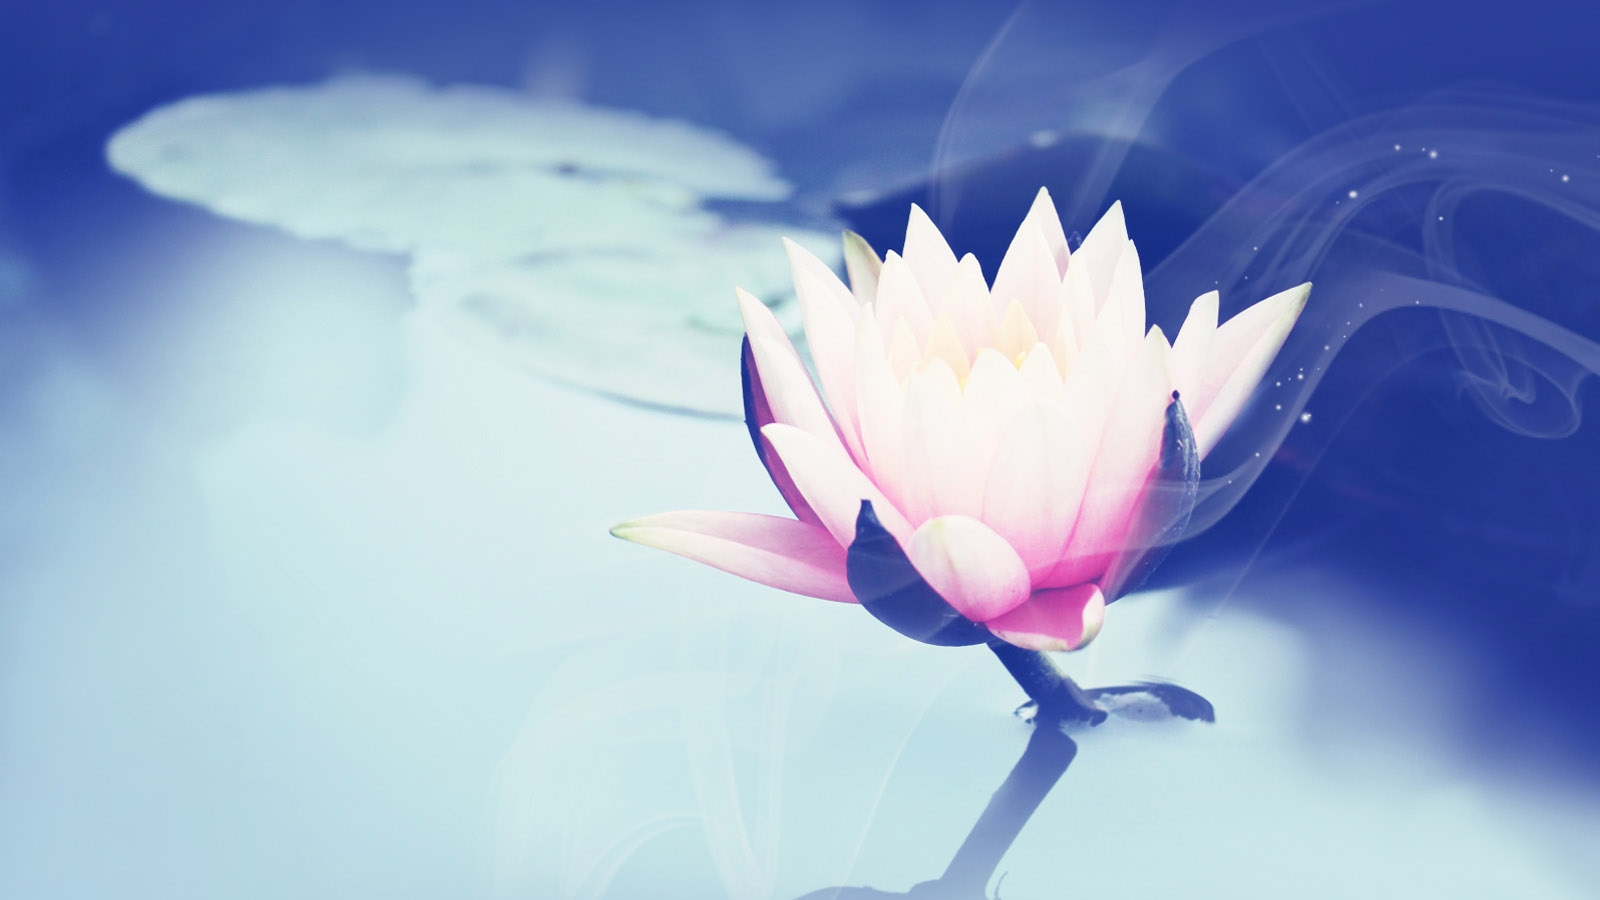 http://hddesktopwallpapers.in/wp-content/uploads/2015/11/images-lotus-flower.jpg